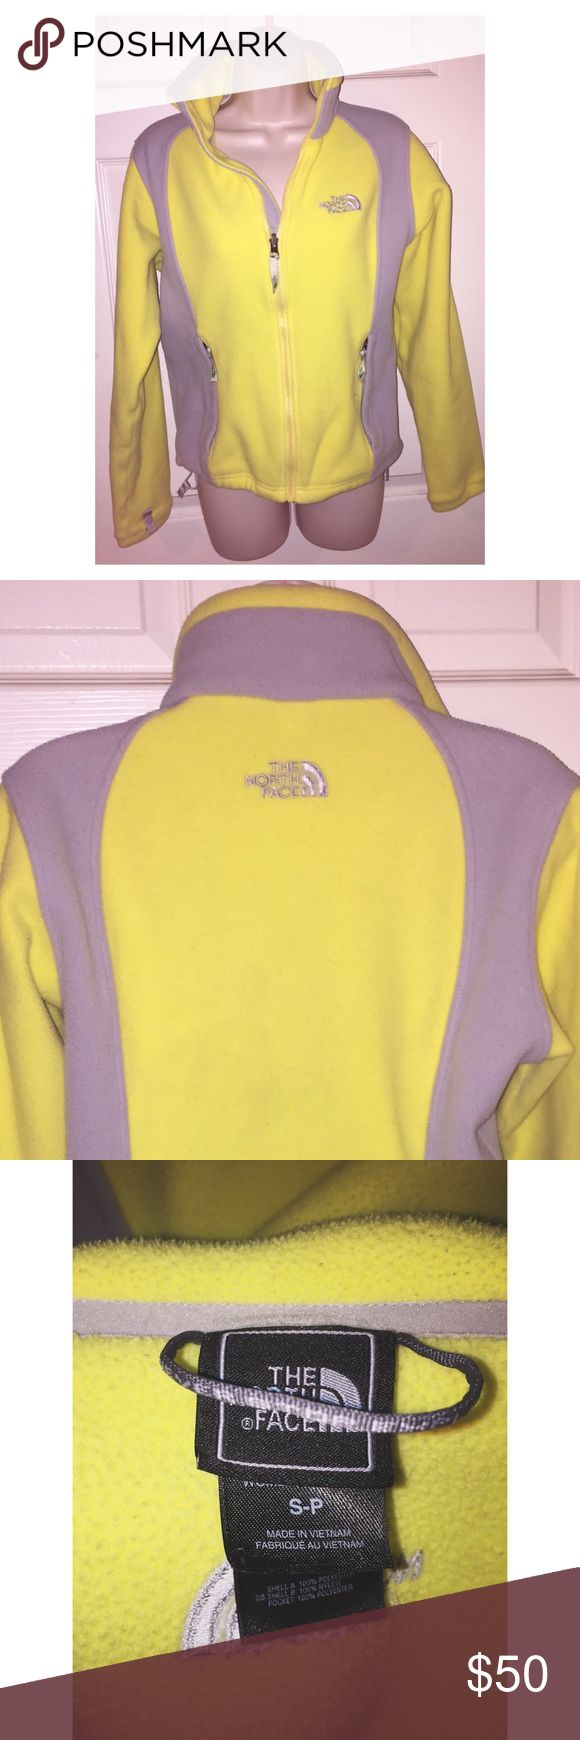 North Face Yellow zip up North Face jacket. Women's small, excellent condition! The North Face Jackets & Coats